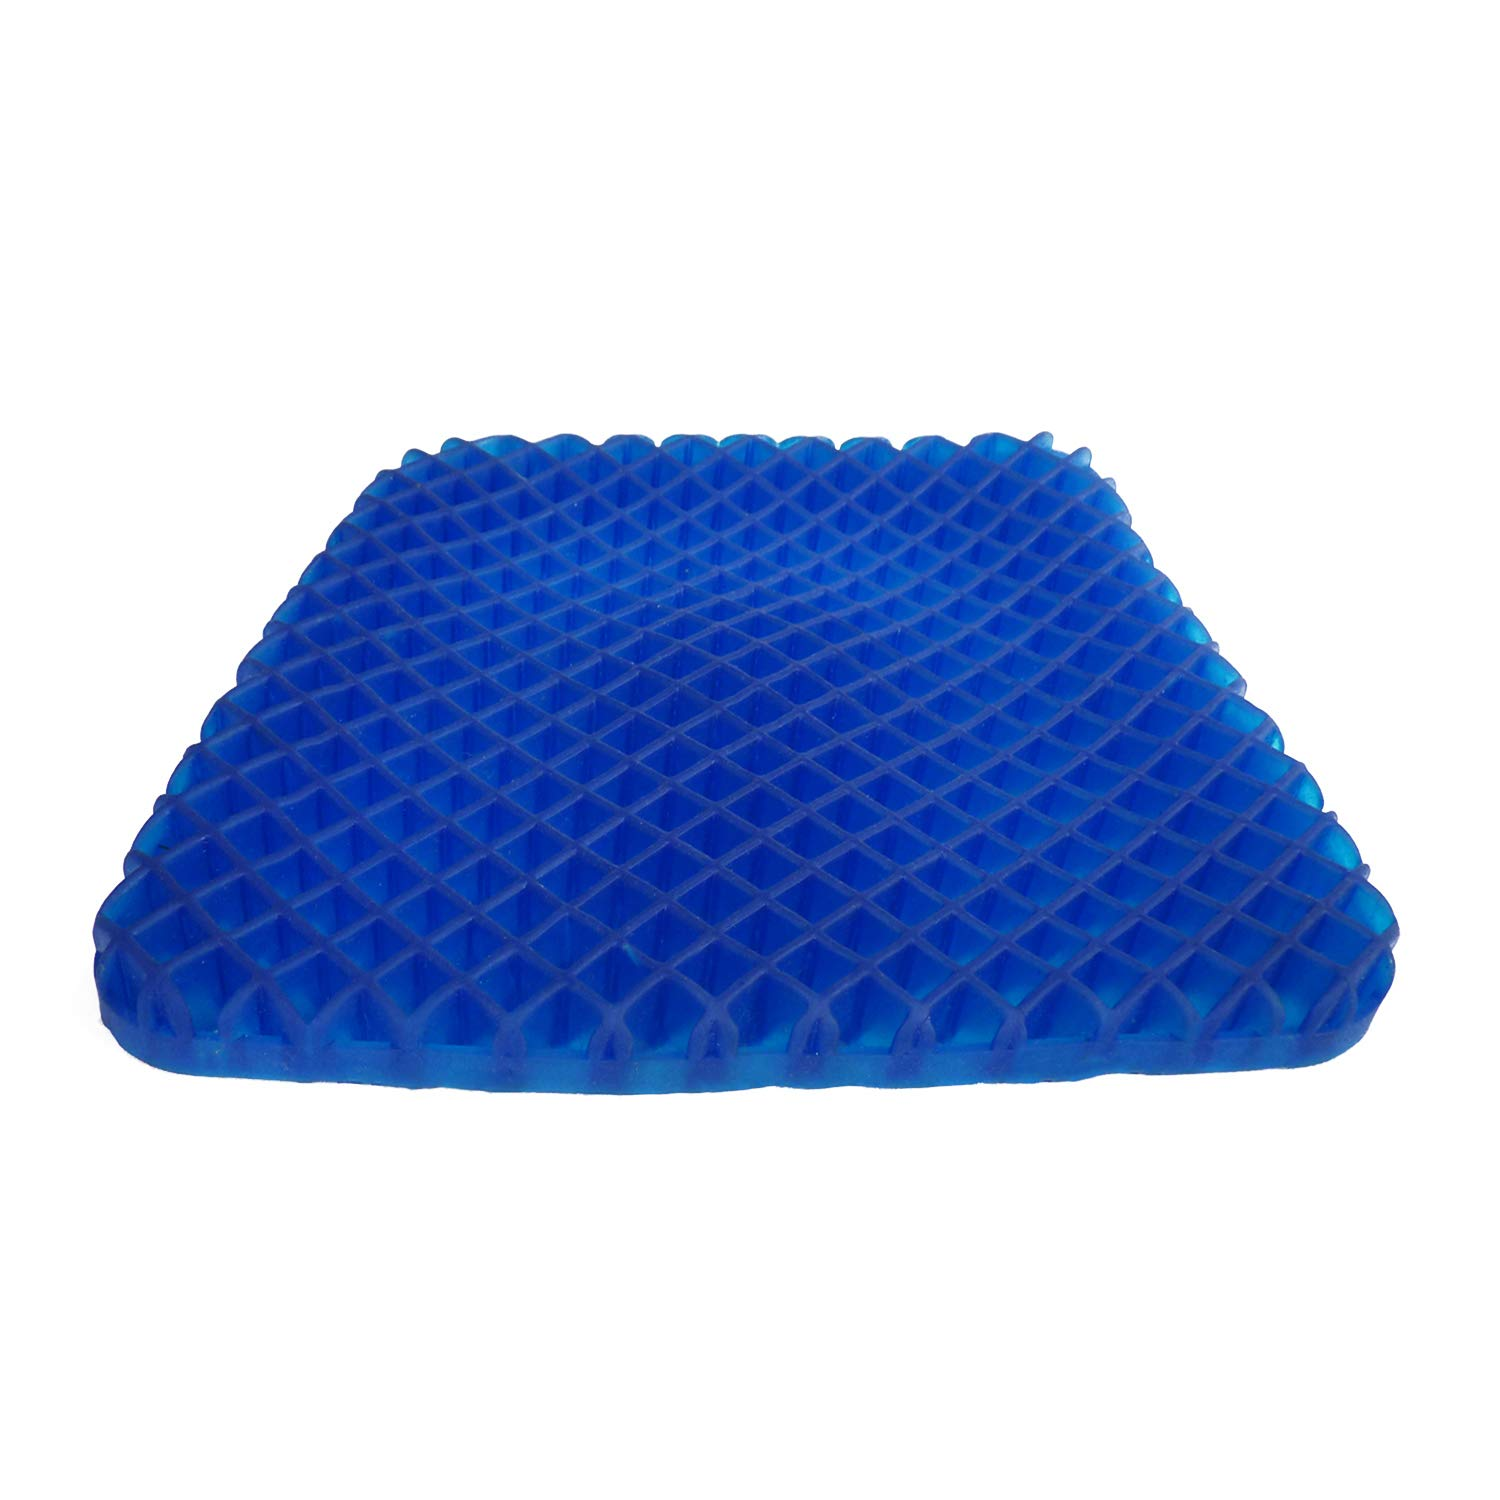 Gel Seat Cushion Pad Non-Slip Orthopedic Gel Sitter Cushion for Tailbone Pain Office Chair Car Seat Cushion